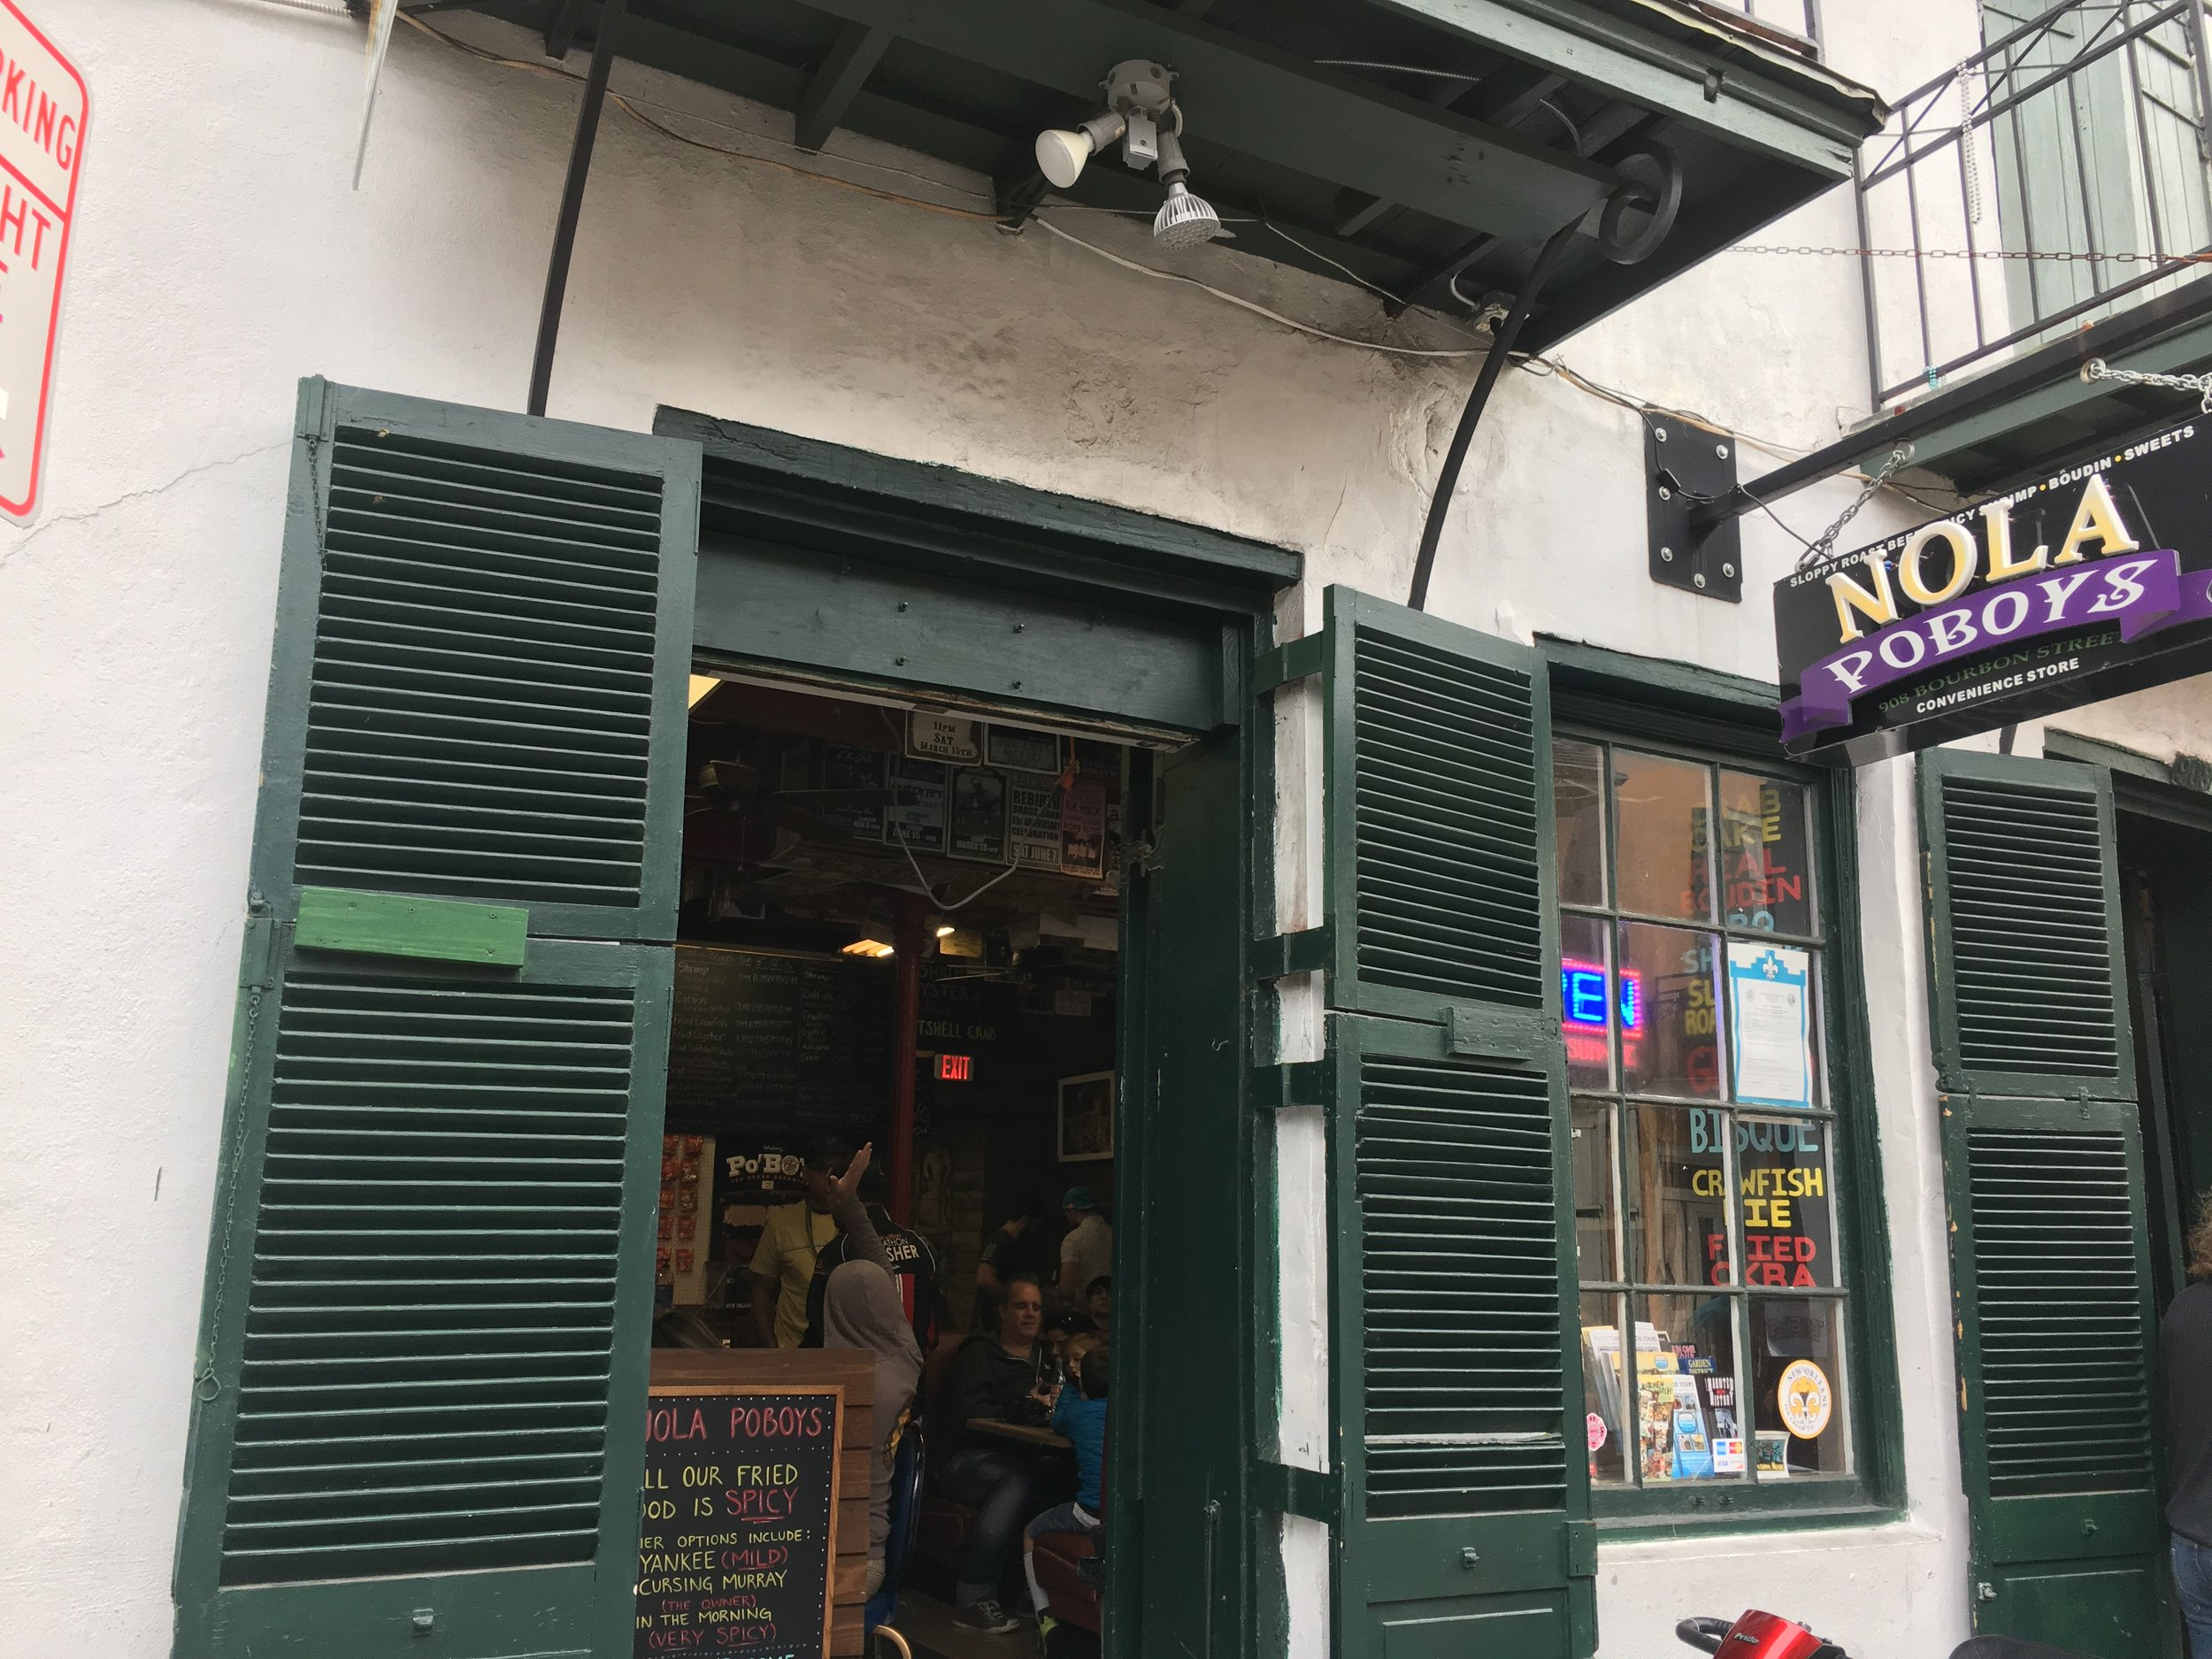 NOLA Po'Boys can be found right on Bourbon Street between Dumaine and Saint Phillip.